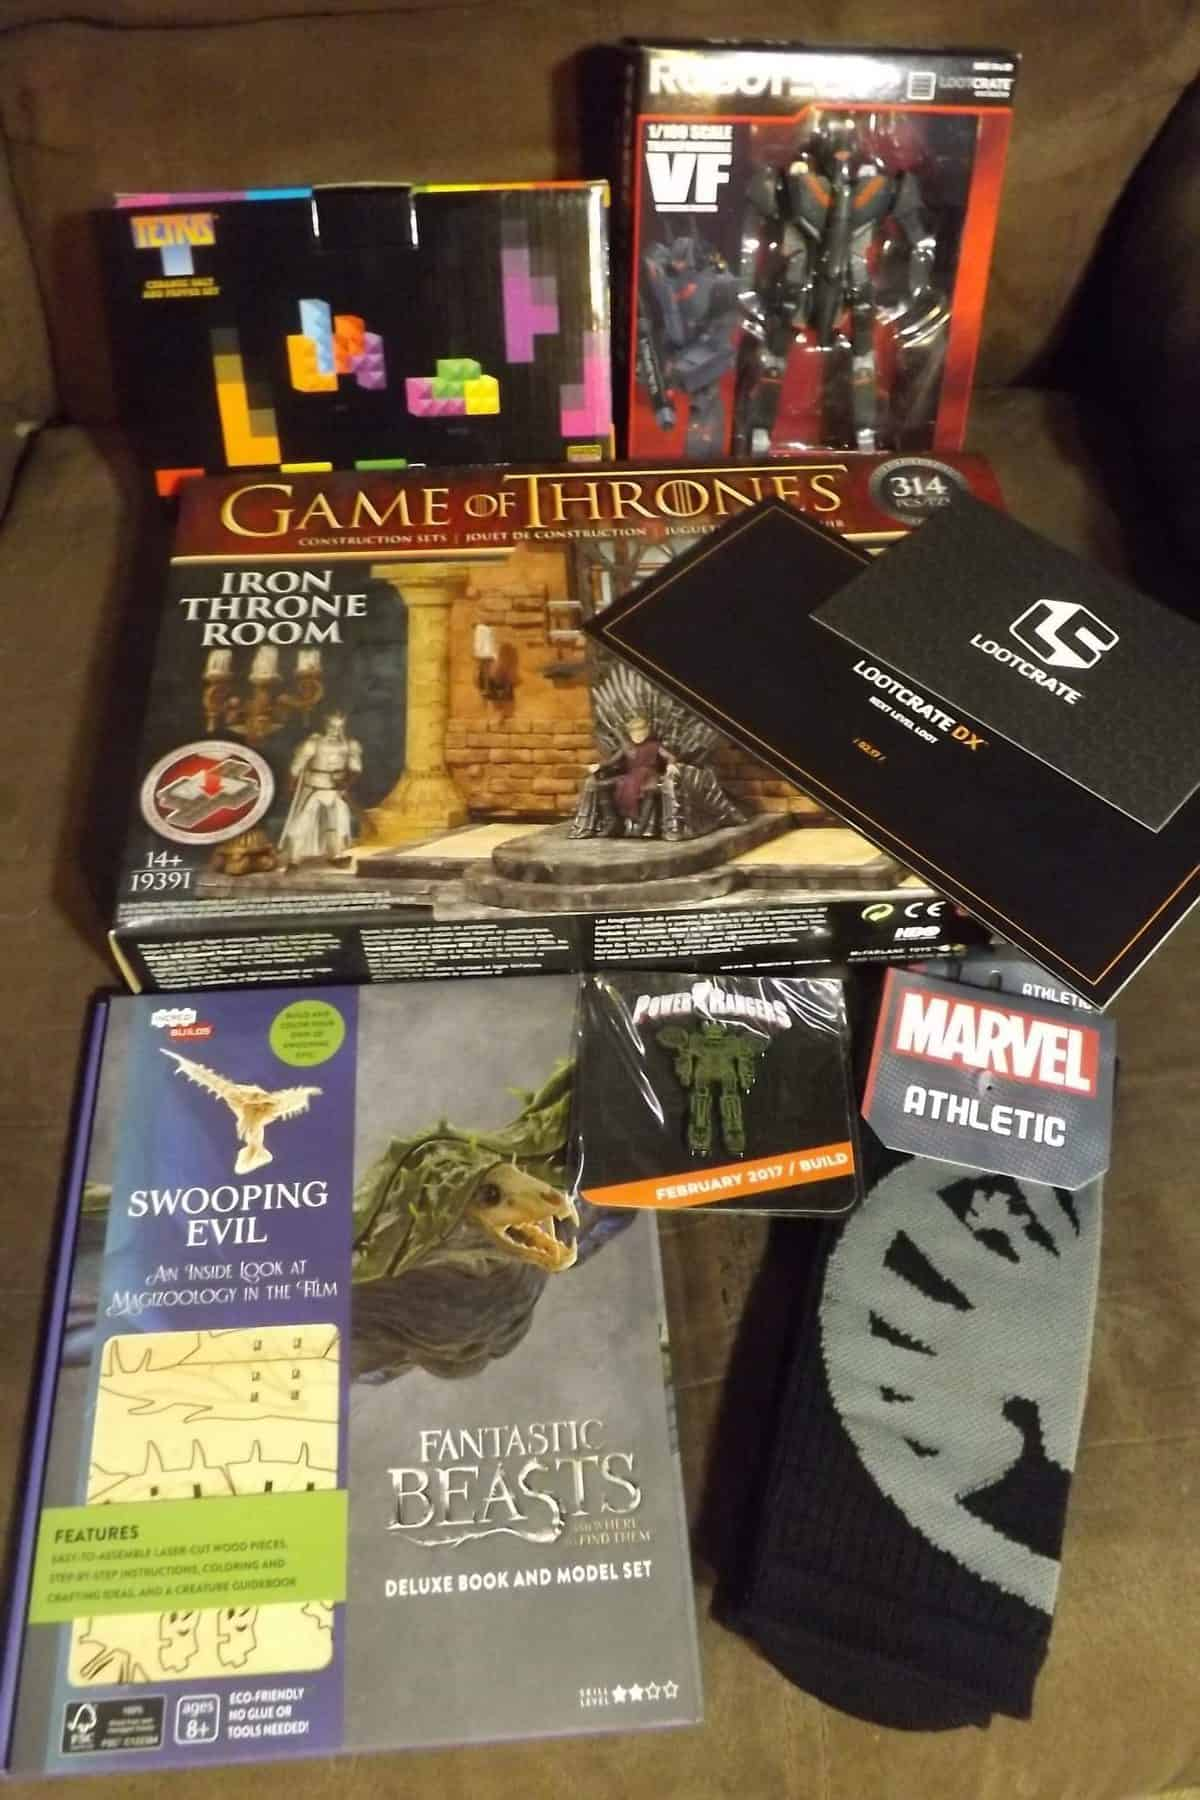 February 2017 Loot Crate DX Review - Box Contents